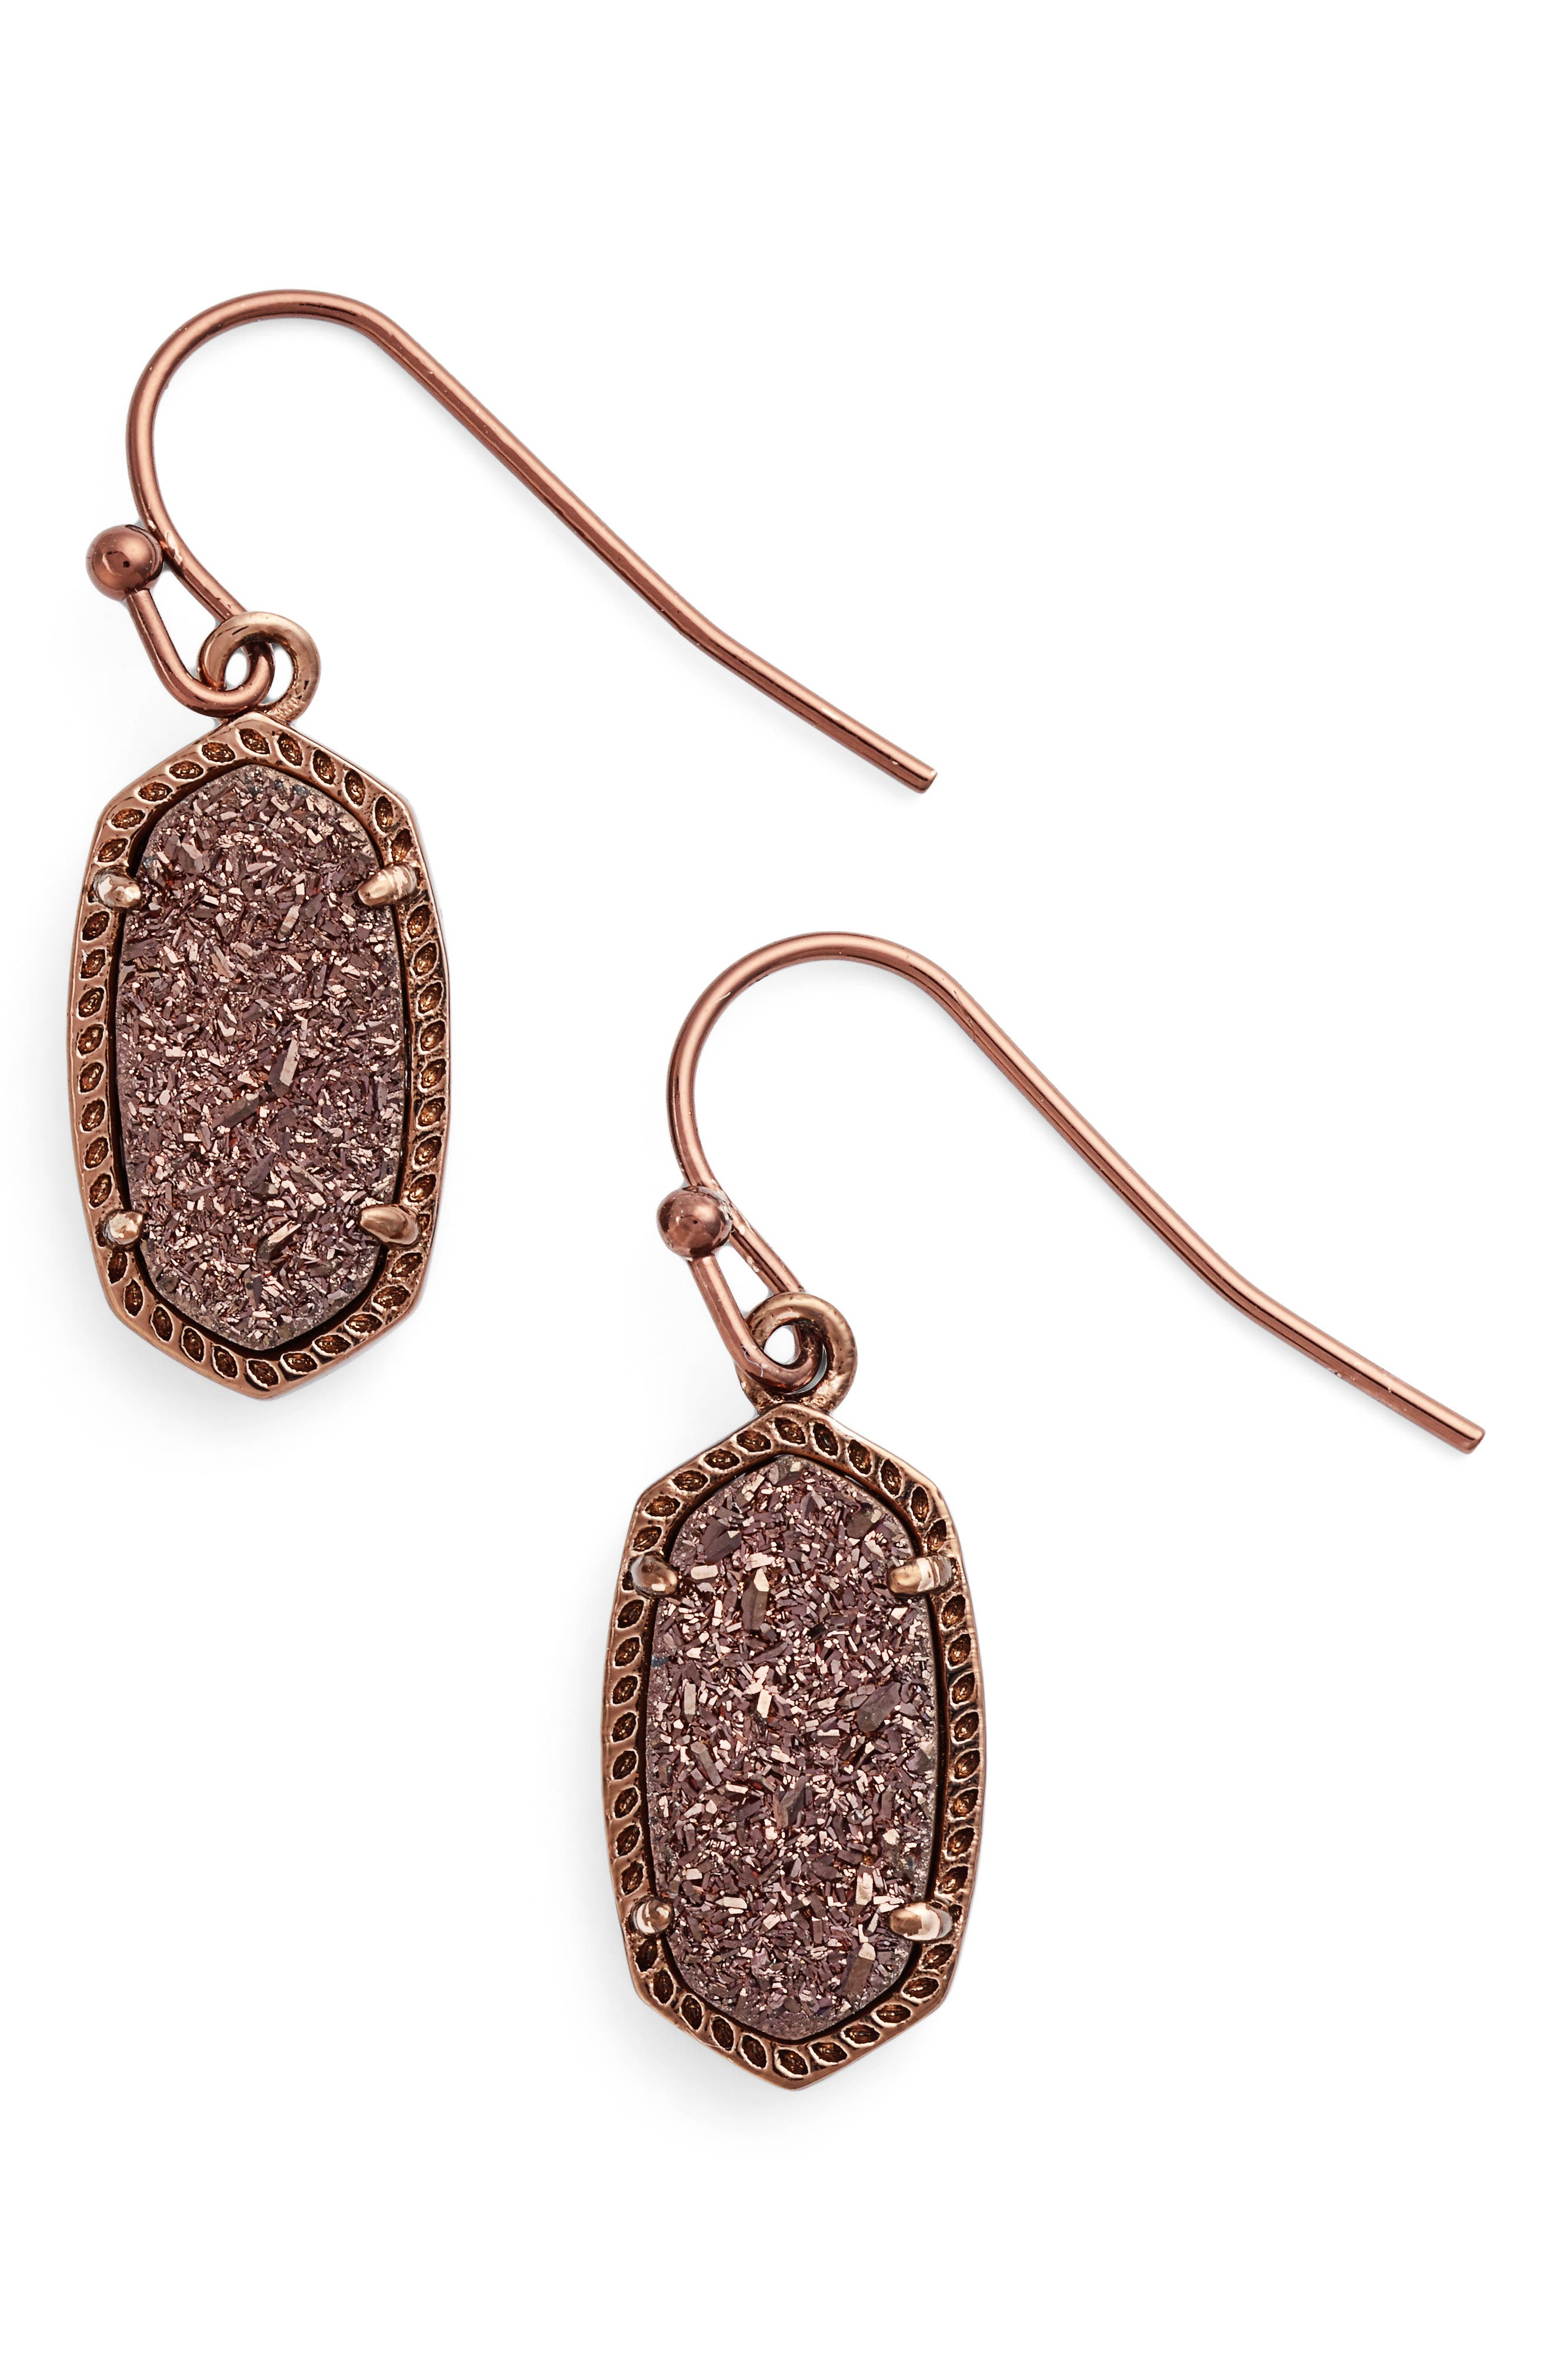 Lee Small Drop Earrings,                         Main,                         color, Chocolate Drusy